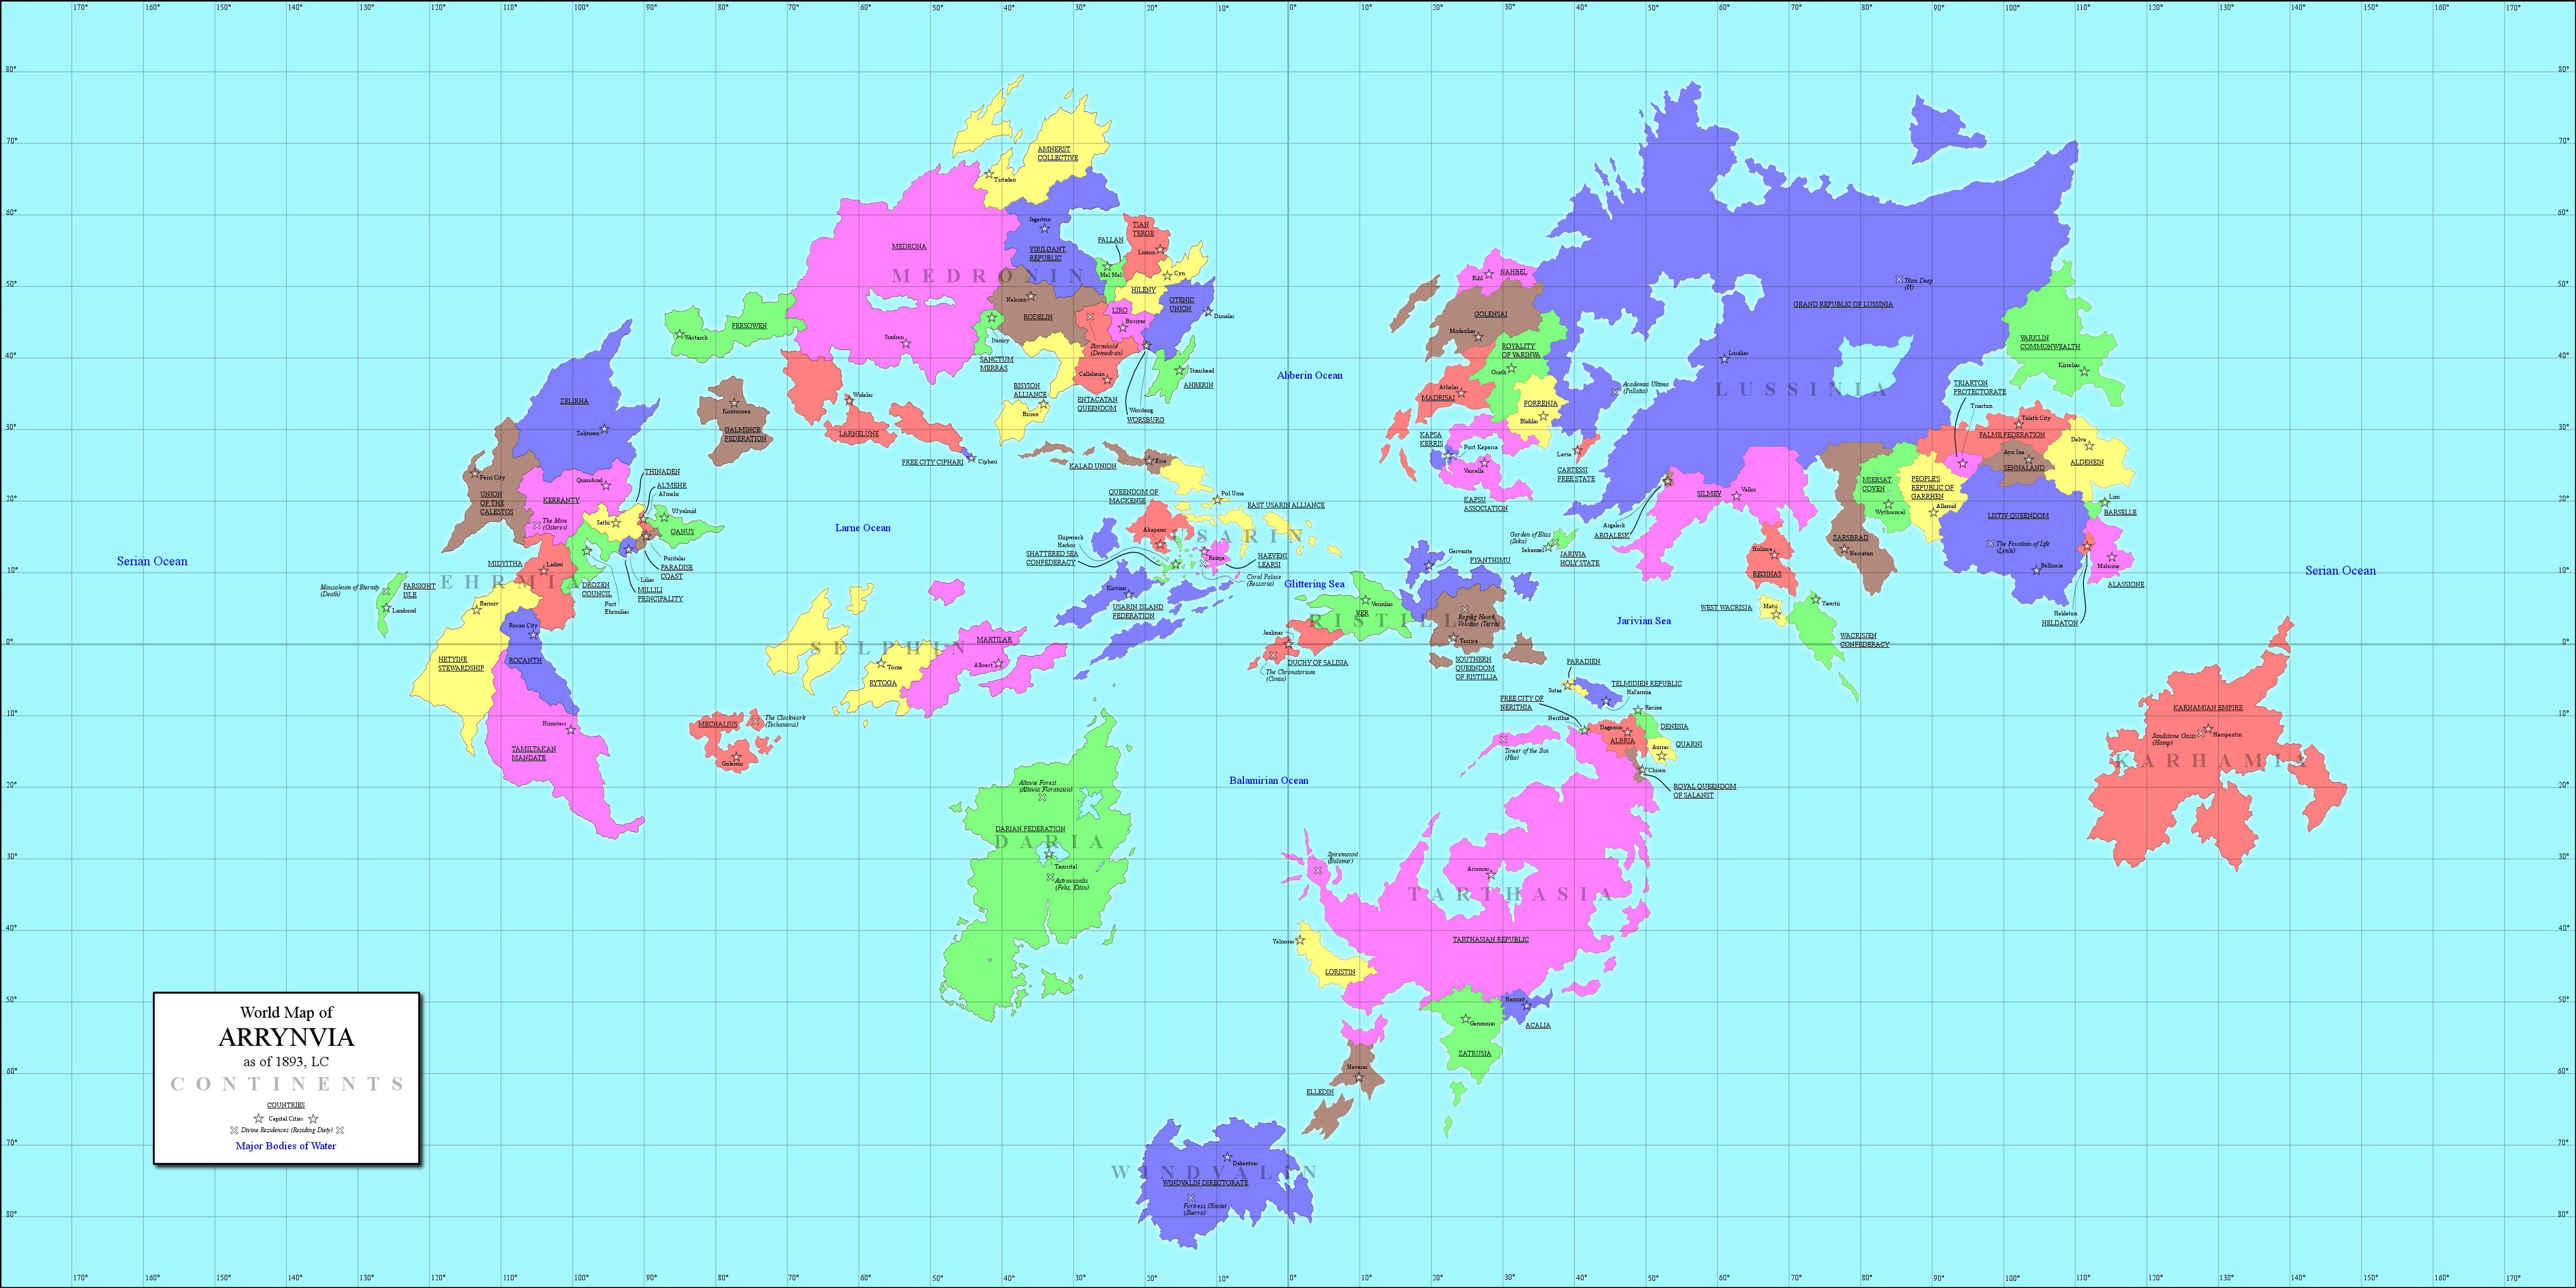 World map of eriond by arsheesh on deviantart rnva world map by hamstercorp sciox Images